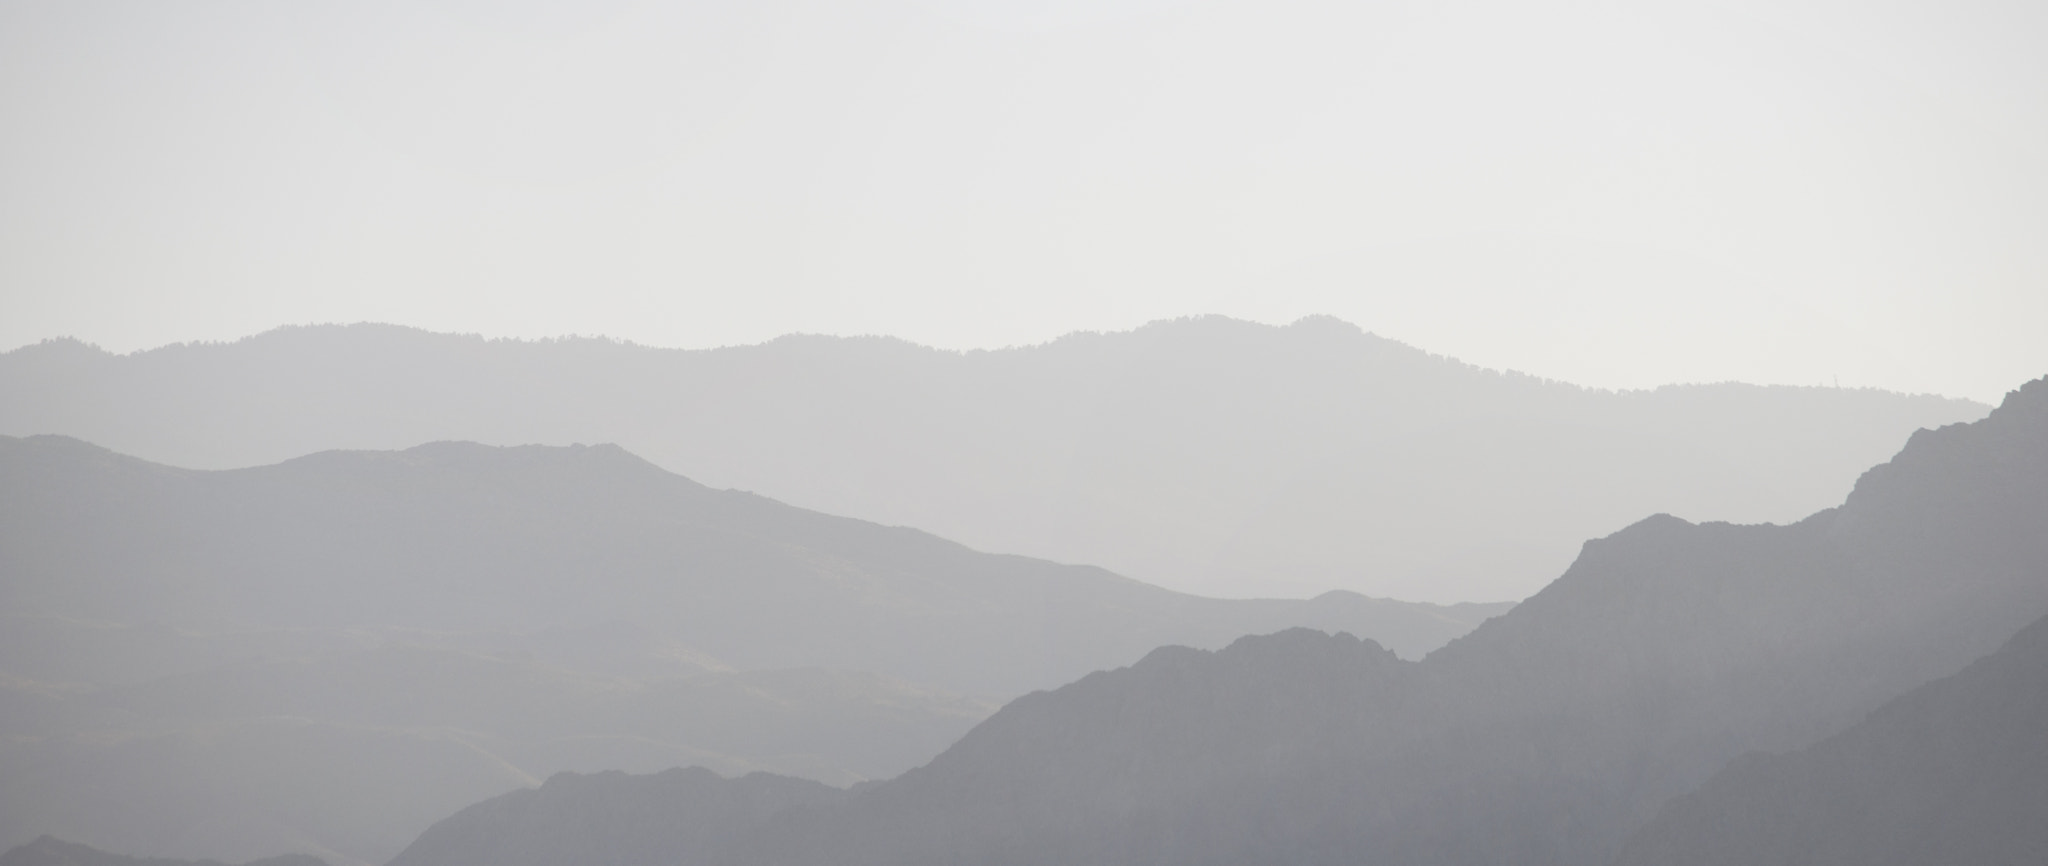 Photograph Layered Mountains by Chris Hogan on 500px